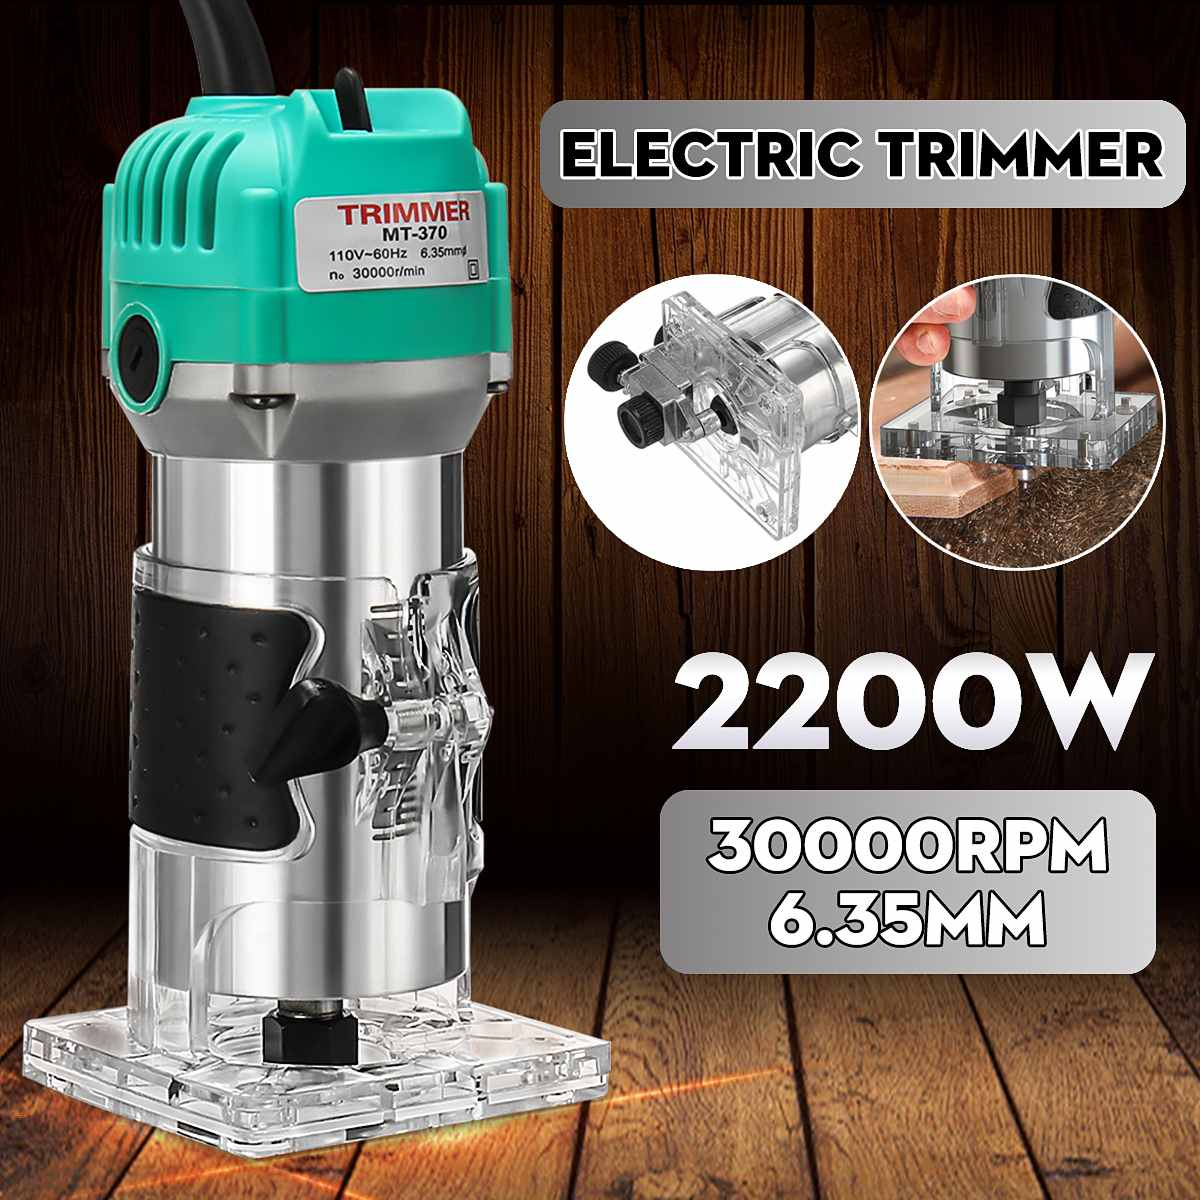 2200W Woodworking Electric Trimmer 1/4Inch Wood Milling Engraving Slotting Trimming Machine Hand Carving Machine Wood Router Set